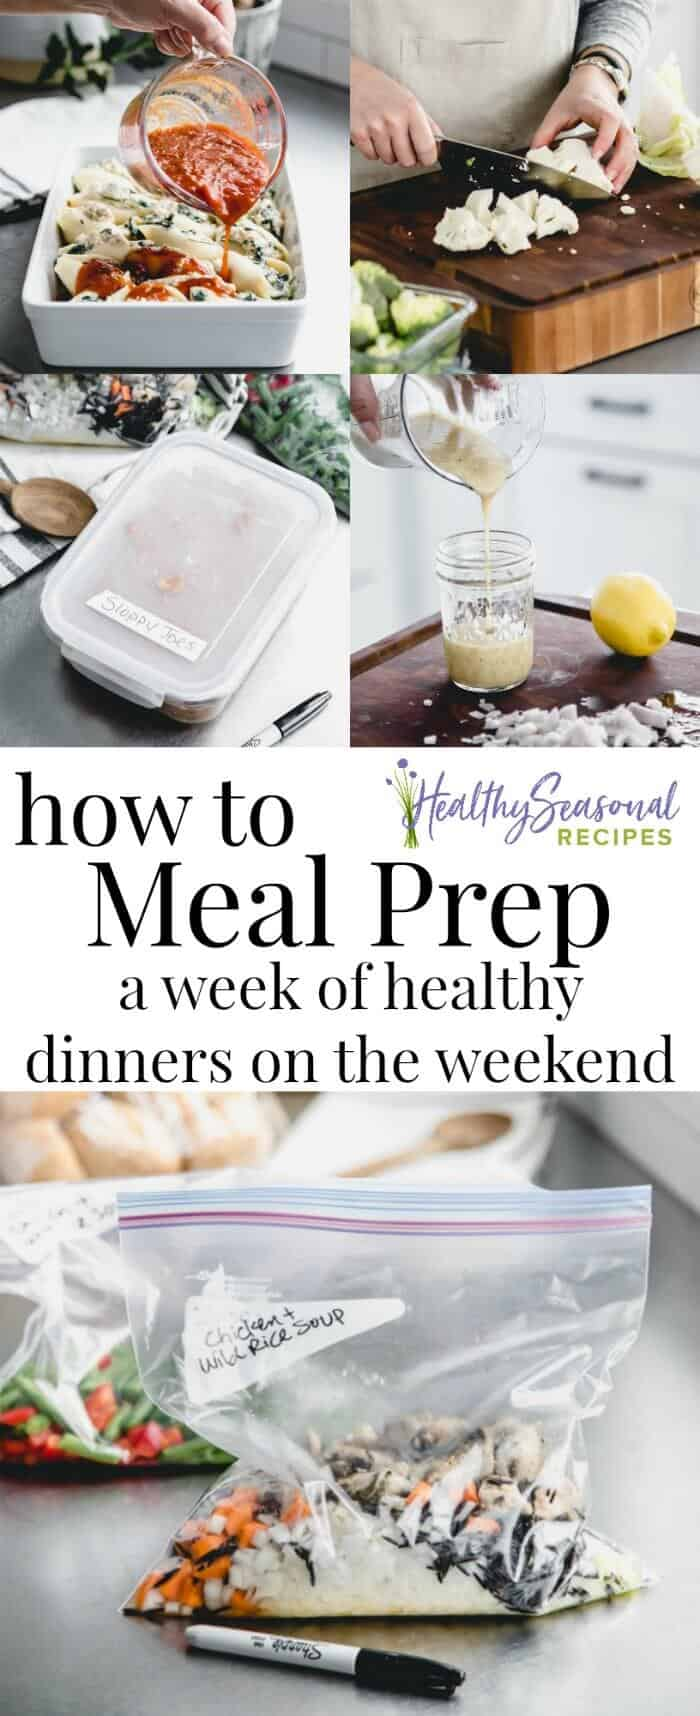 How To Meal Prep a Week of Healthy Meals on the Weekend, plus a downloadable shopping list. This Meal Prep Menu is complete with vegetarian stuffed shells, easy Greek pizza, a freezer slow cooker soup and more. The whole family will love these simple and healthy dinners. #mealpreprecipes